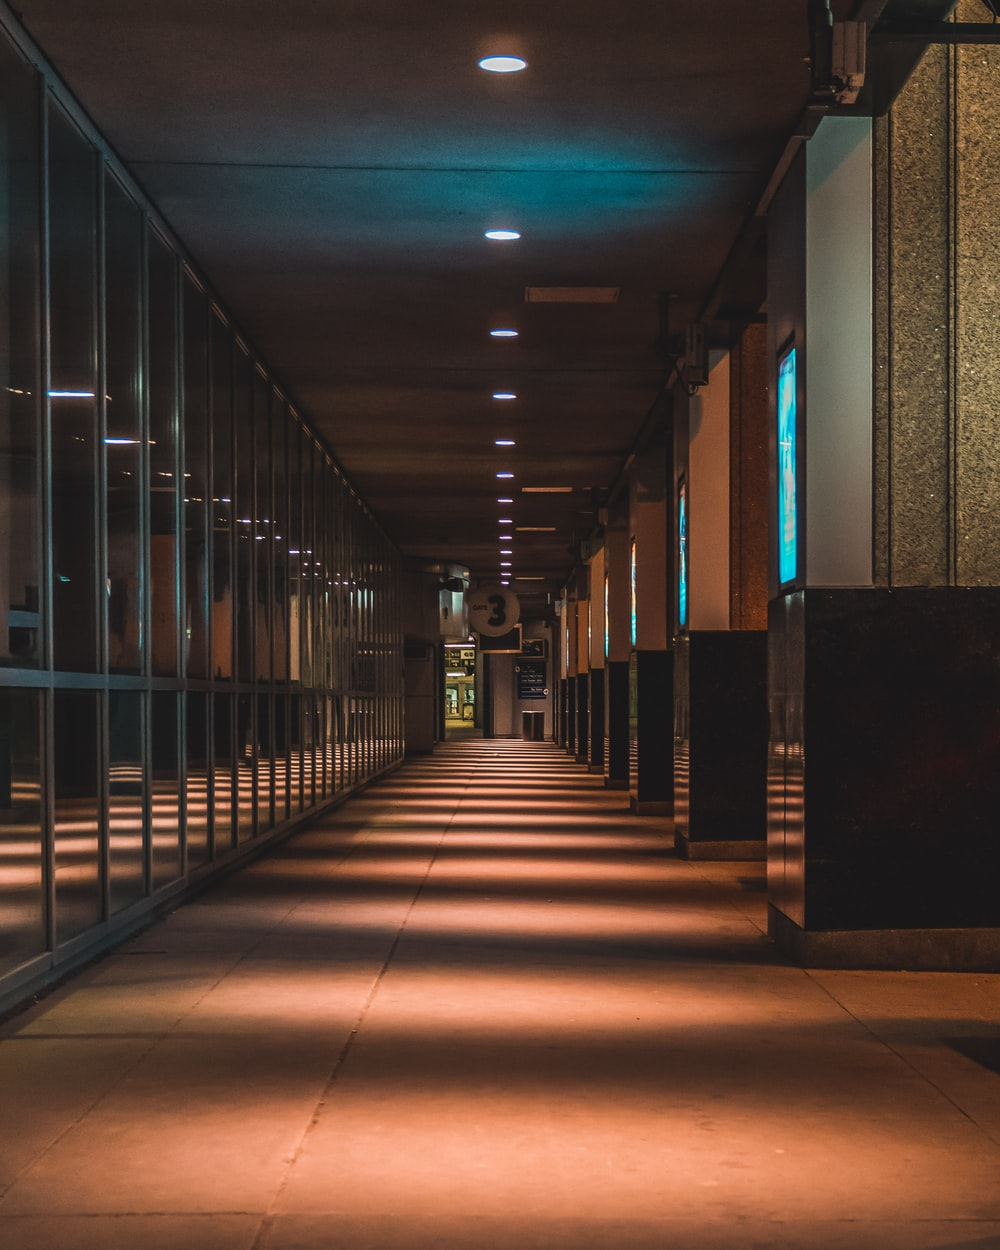 hallway with blue walls and glass windows